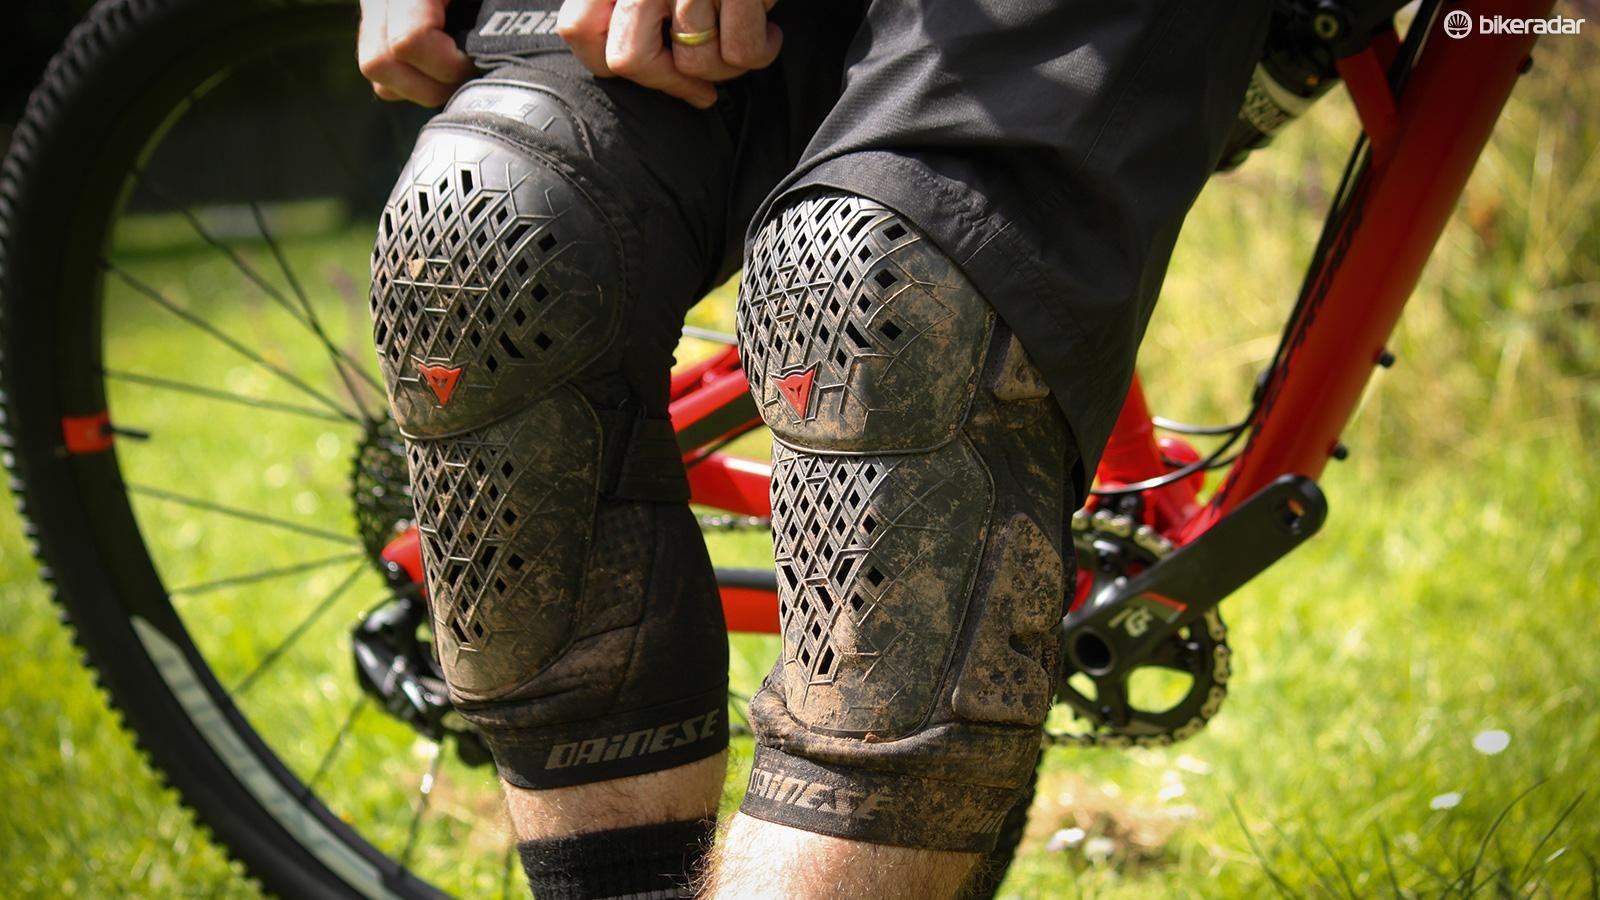 Dainese's Armoform knee pads will last you all day